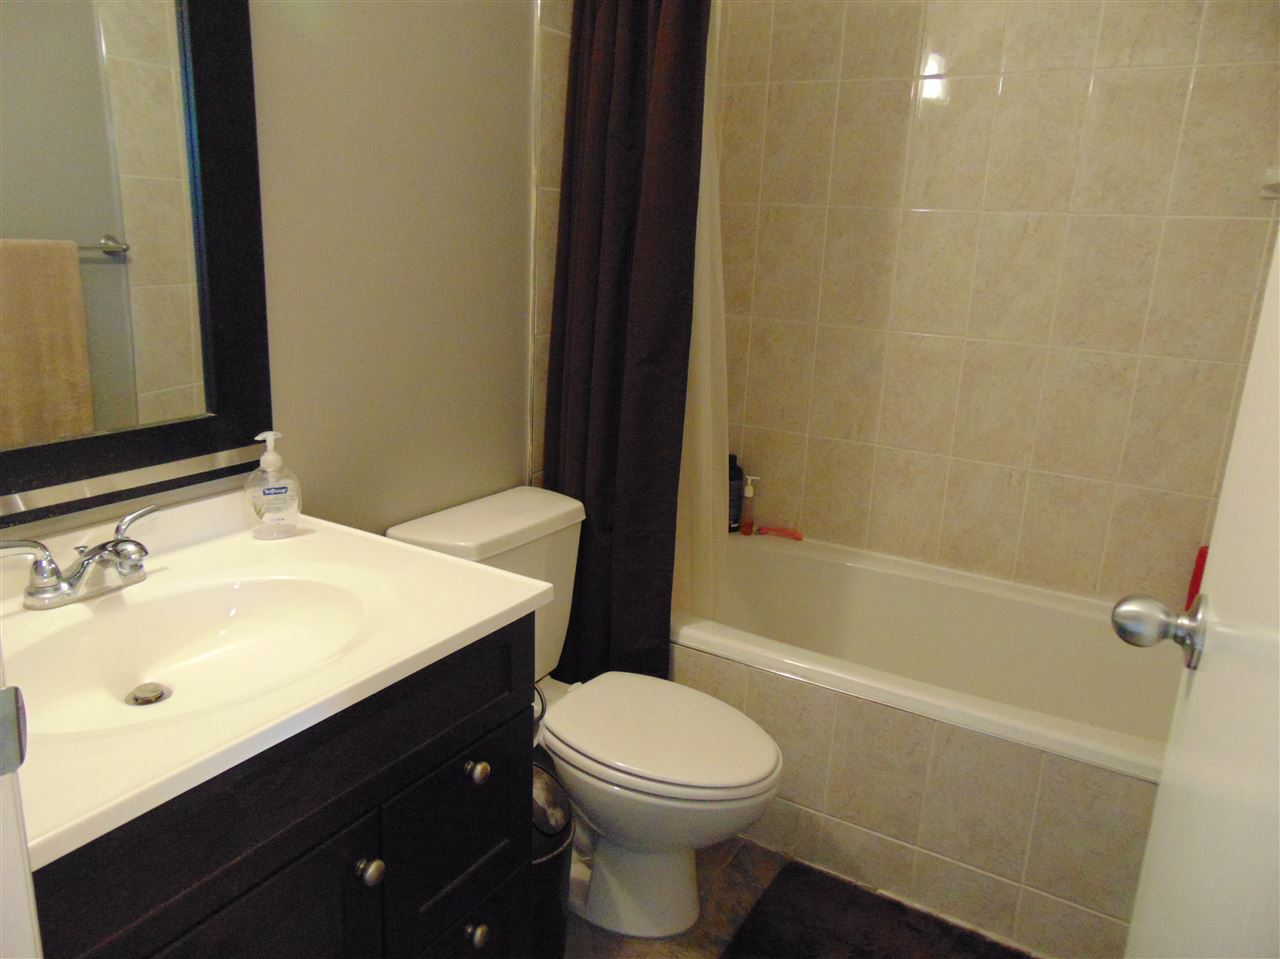 New ceramic tile flooring, vanity, toilet and mirrors